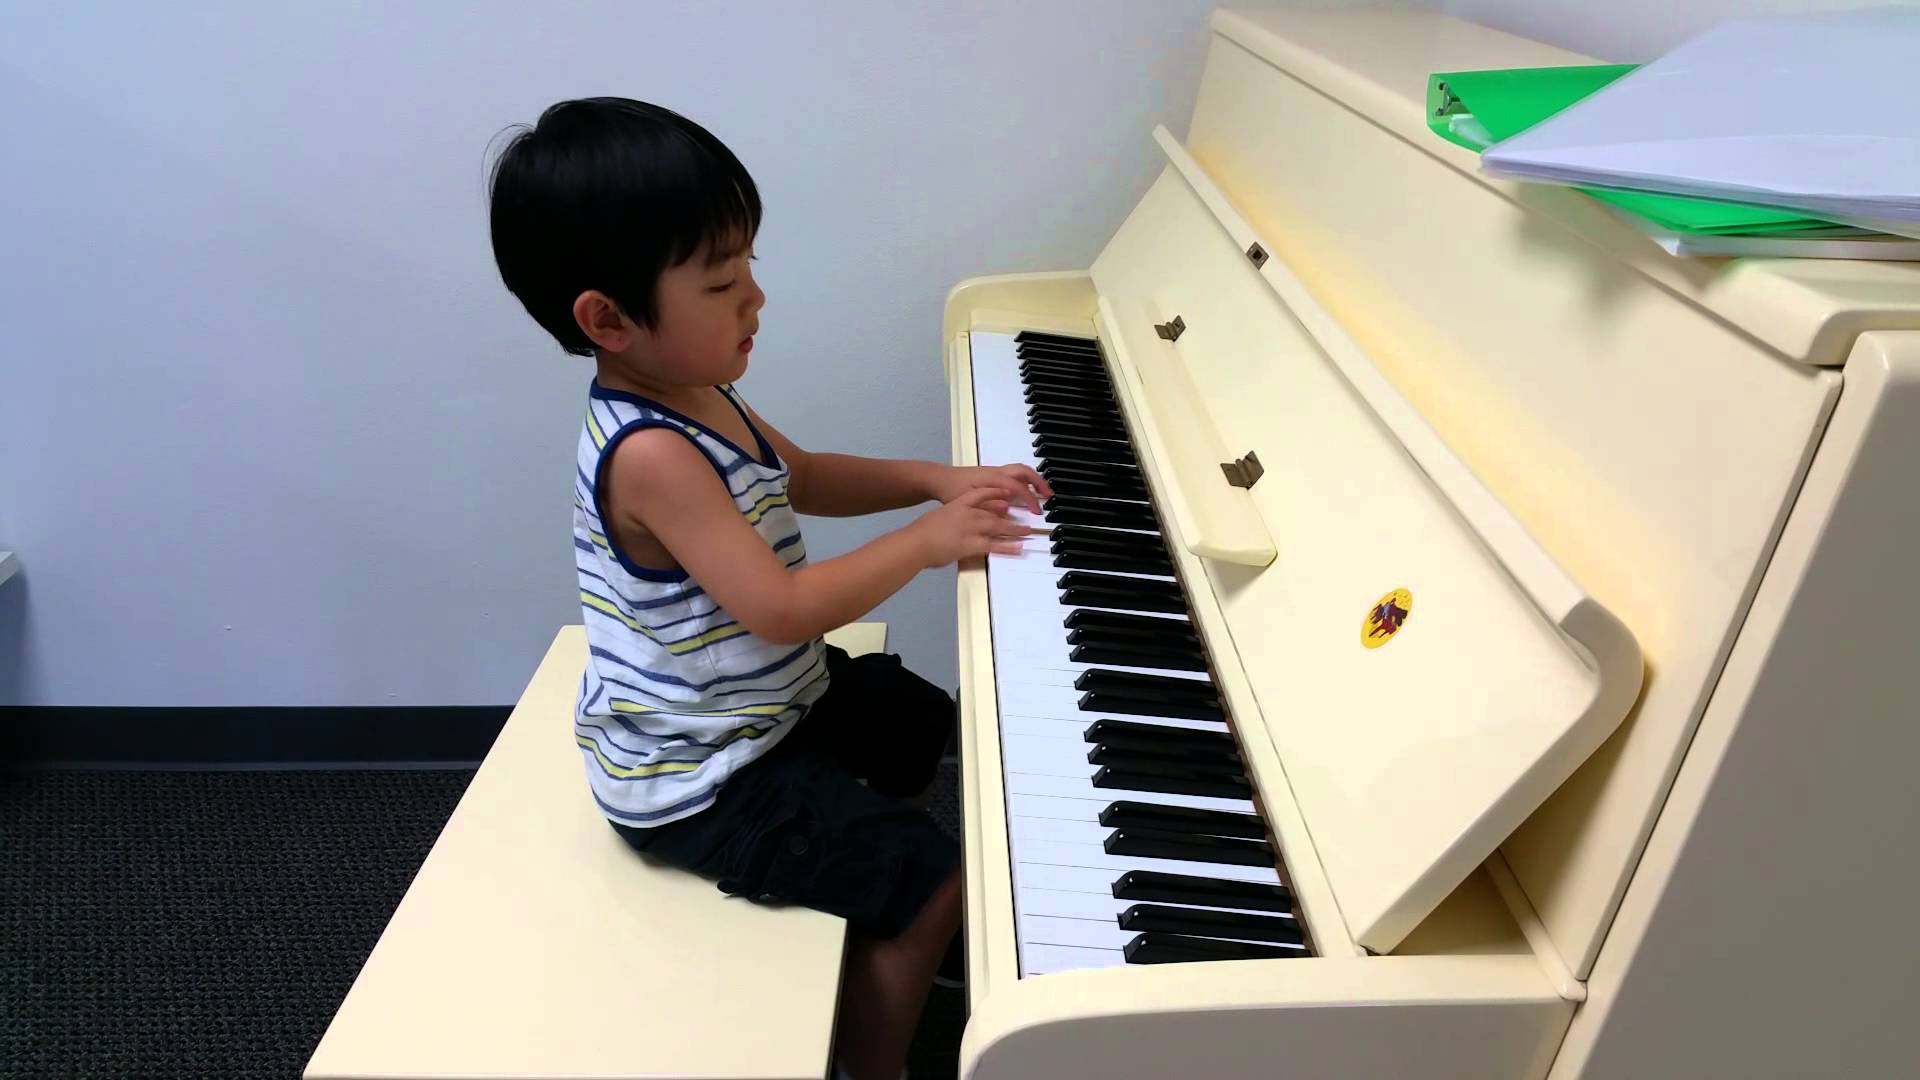 Child Prodigy Evan Le Plays Toccata et Fuga